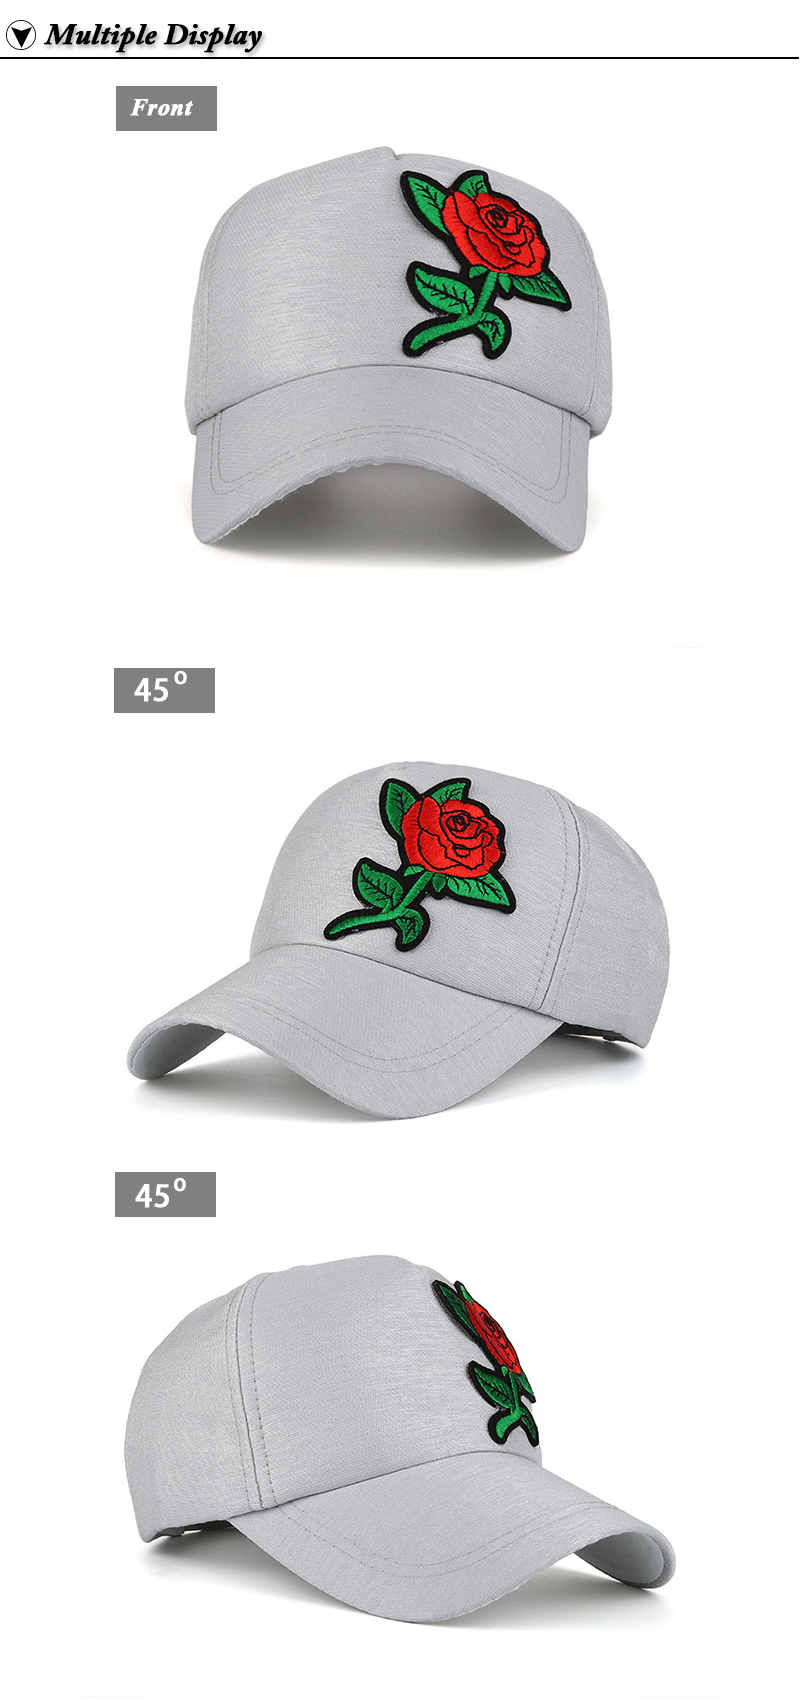 Small Embroidered Flower Snapback Cap - Front and Left and Right Front Angle Views